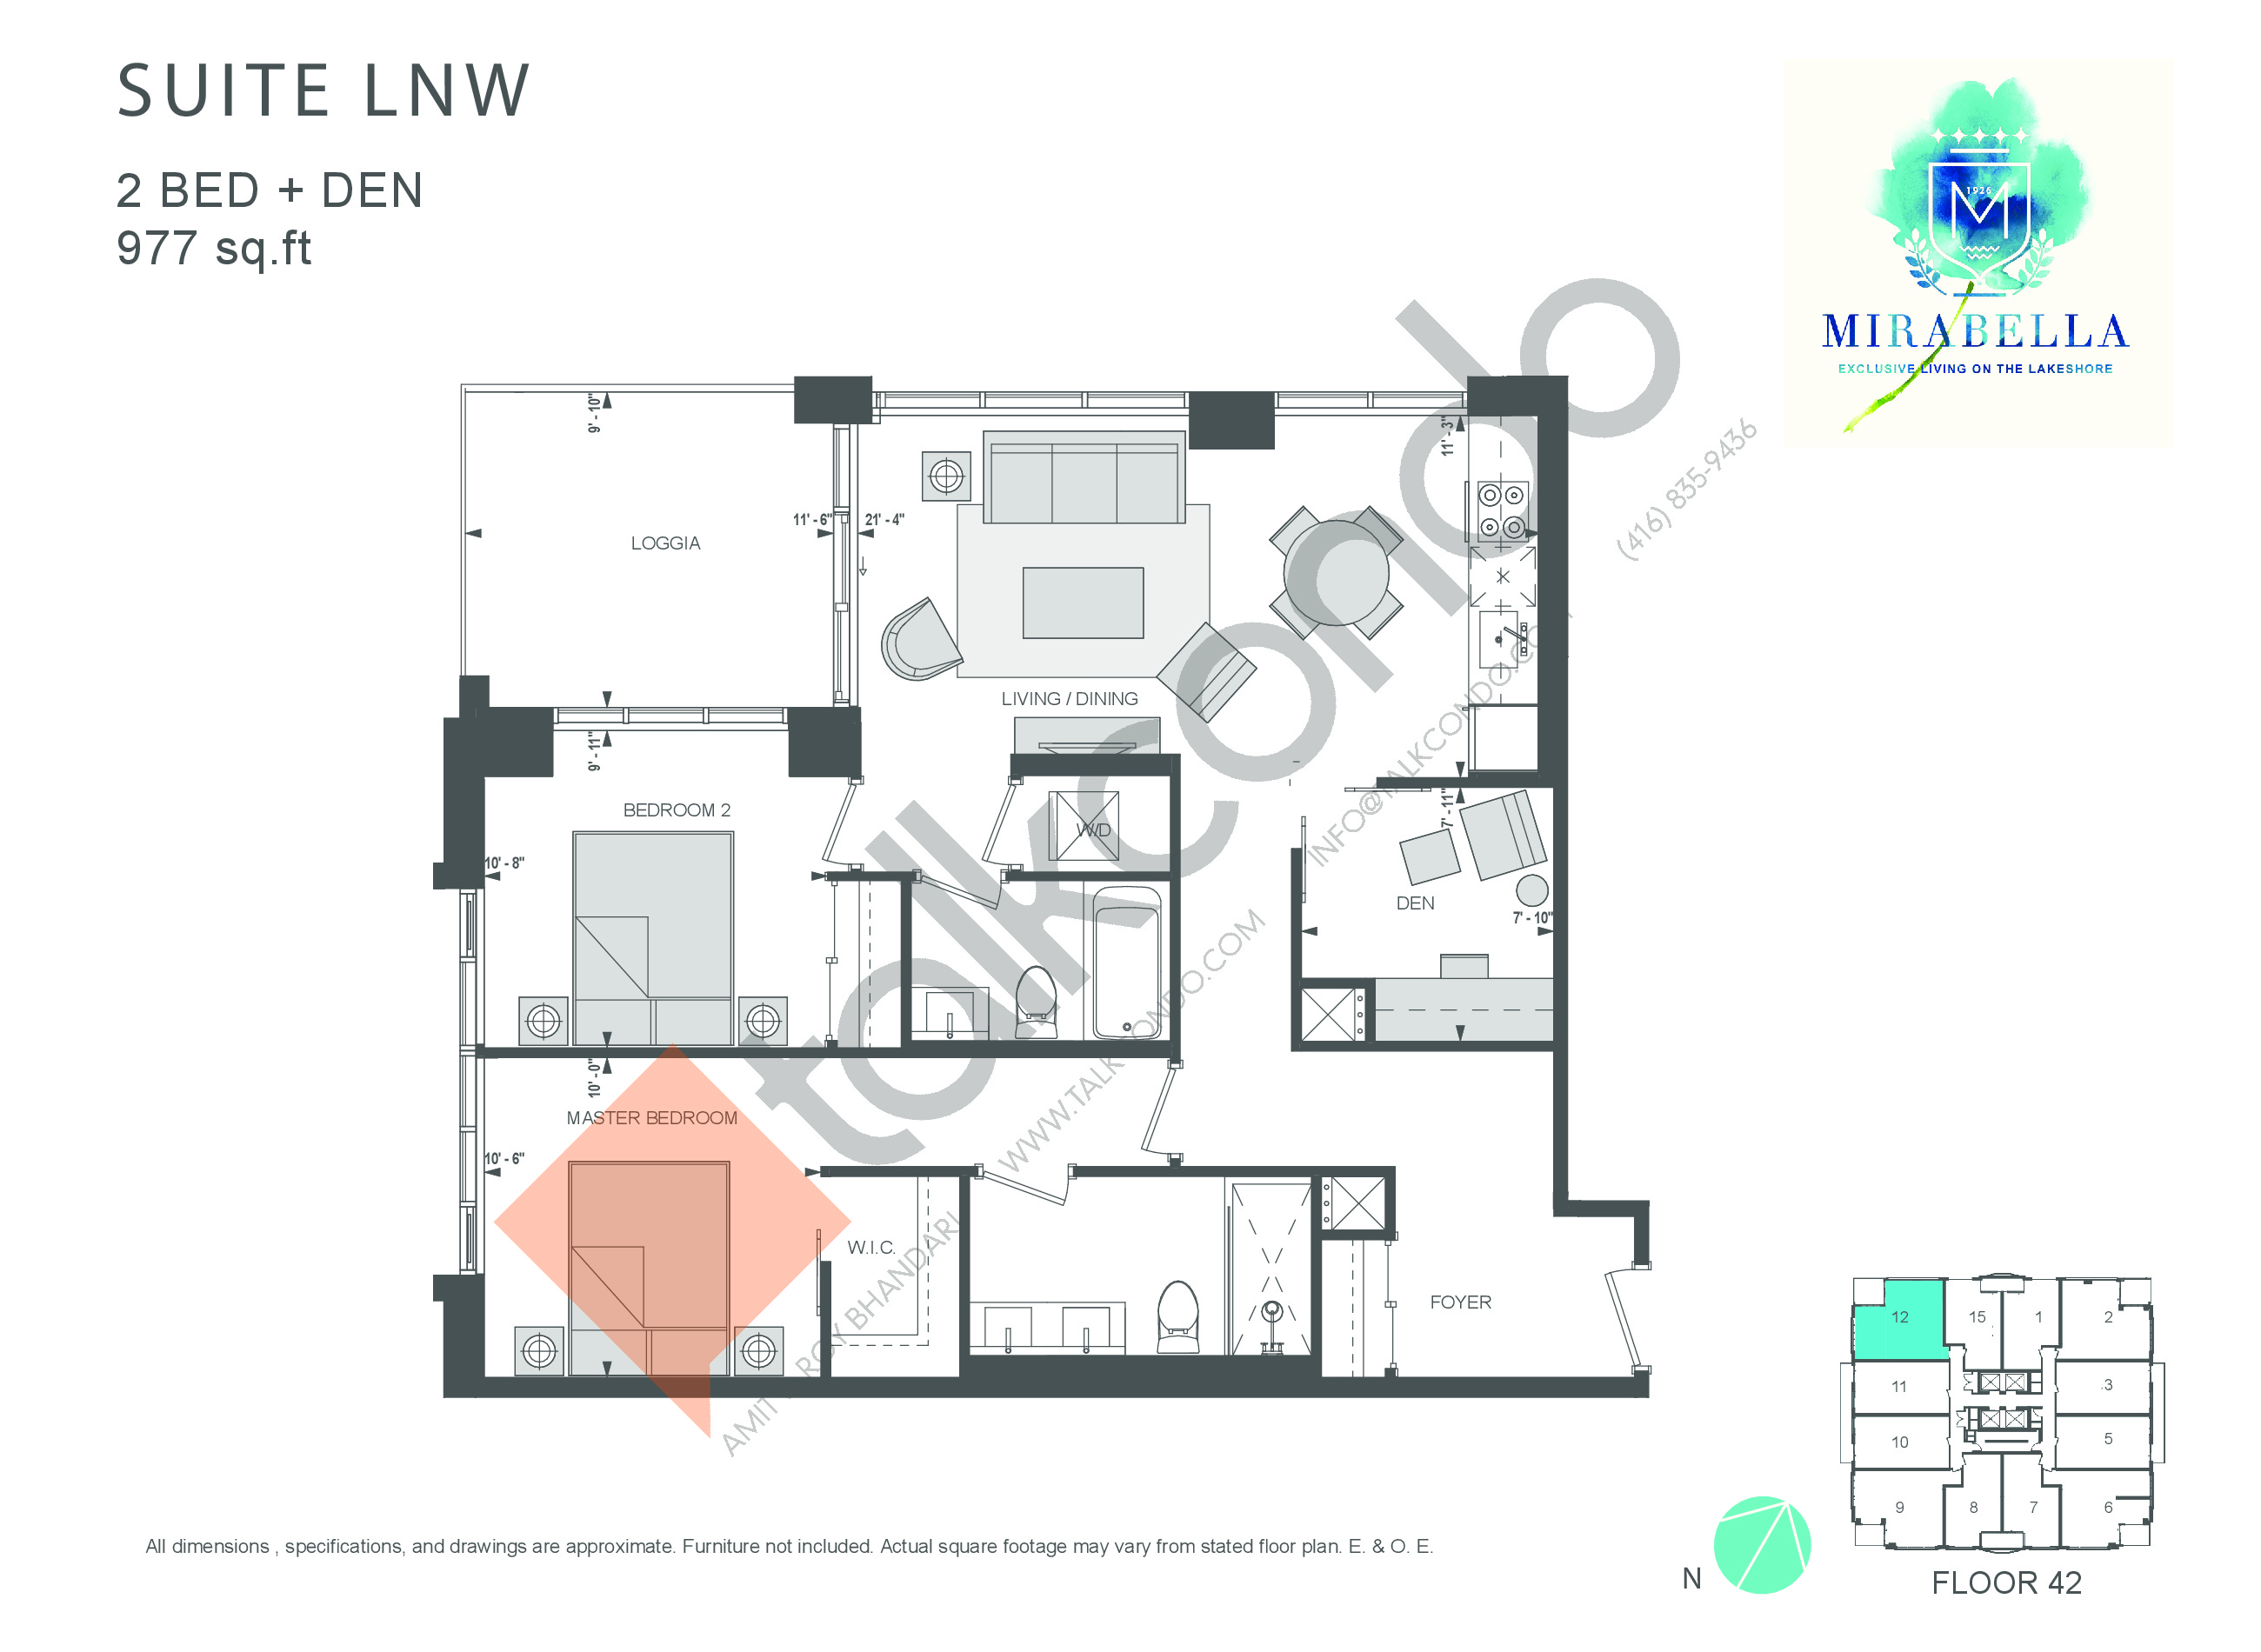 Suite LNW Floor Plan at Mirabella Luxury Condos East Tower - 977 sq.ft